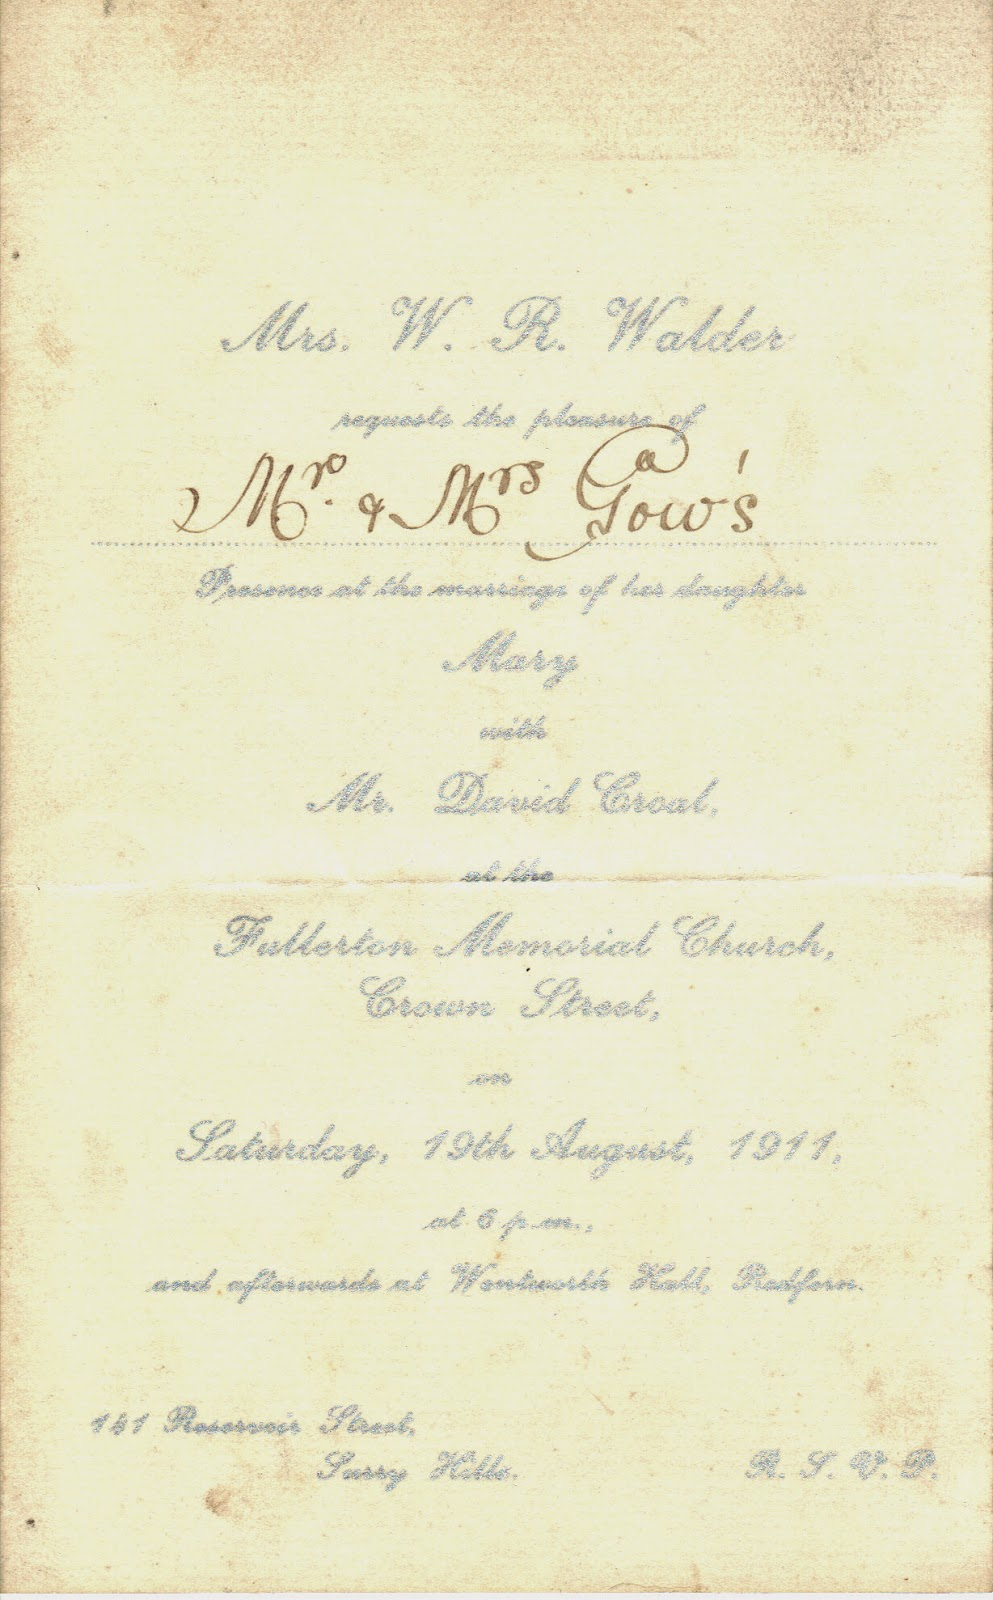 Genealogically Speaking.: Collection of Wedding Invitations